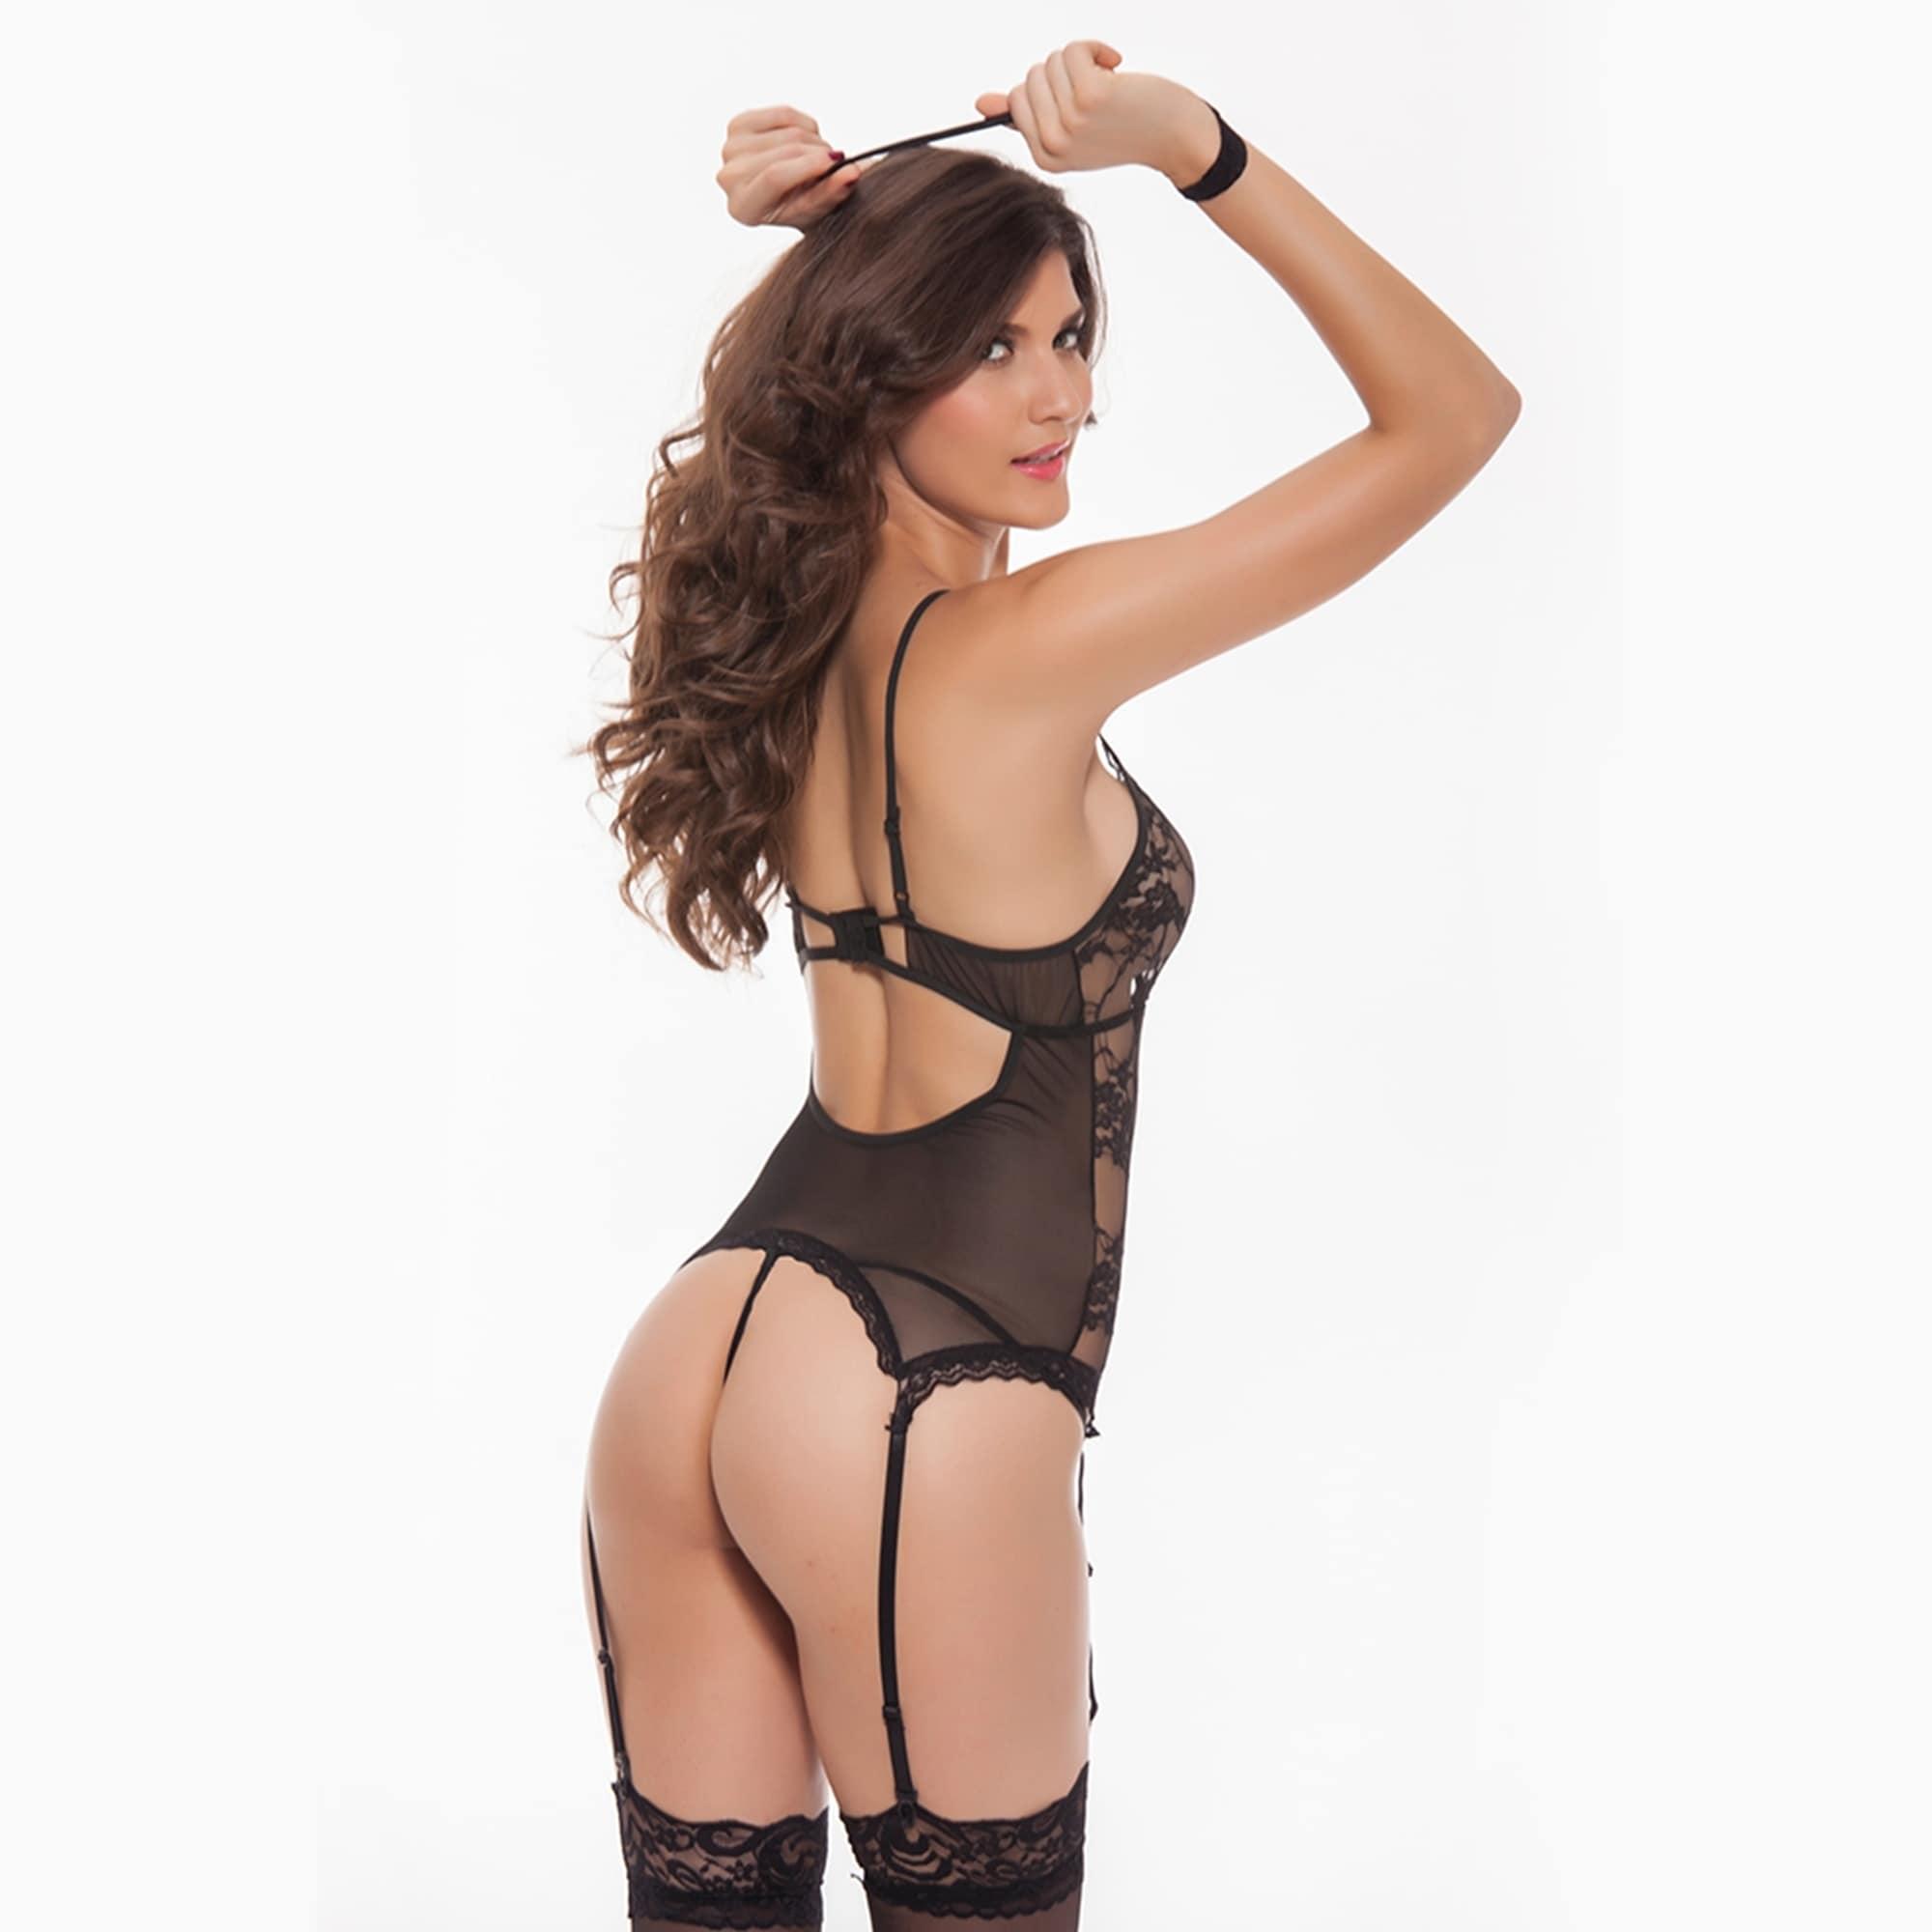 4a88a719d Shop Acappella Sexy Lingerie Sets Lace Babydoll Teddy Nightwear - Free  Shipping On Orders Over $45 - Overstock - 21897568